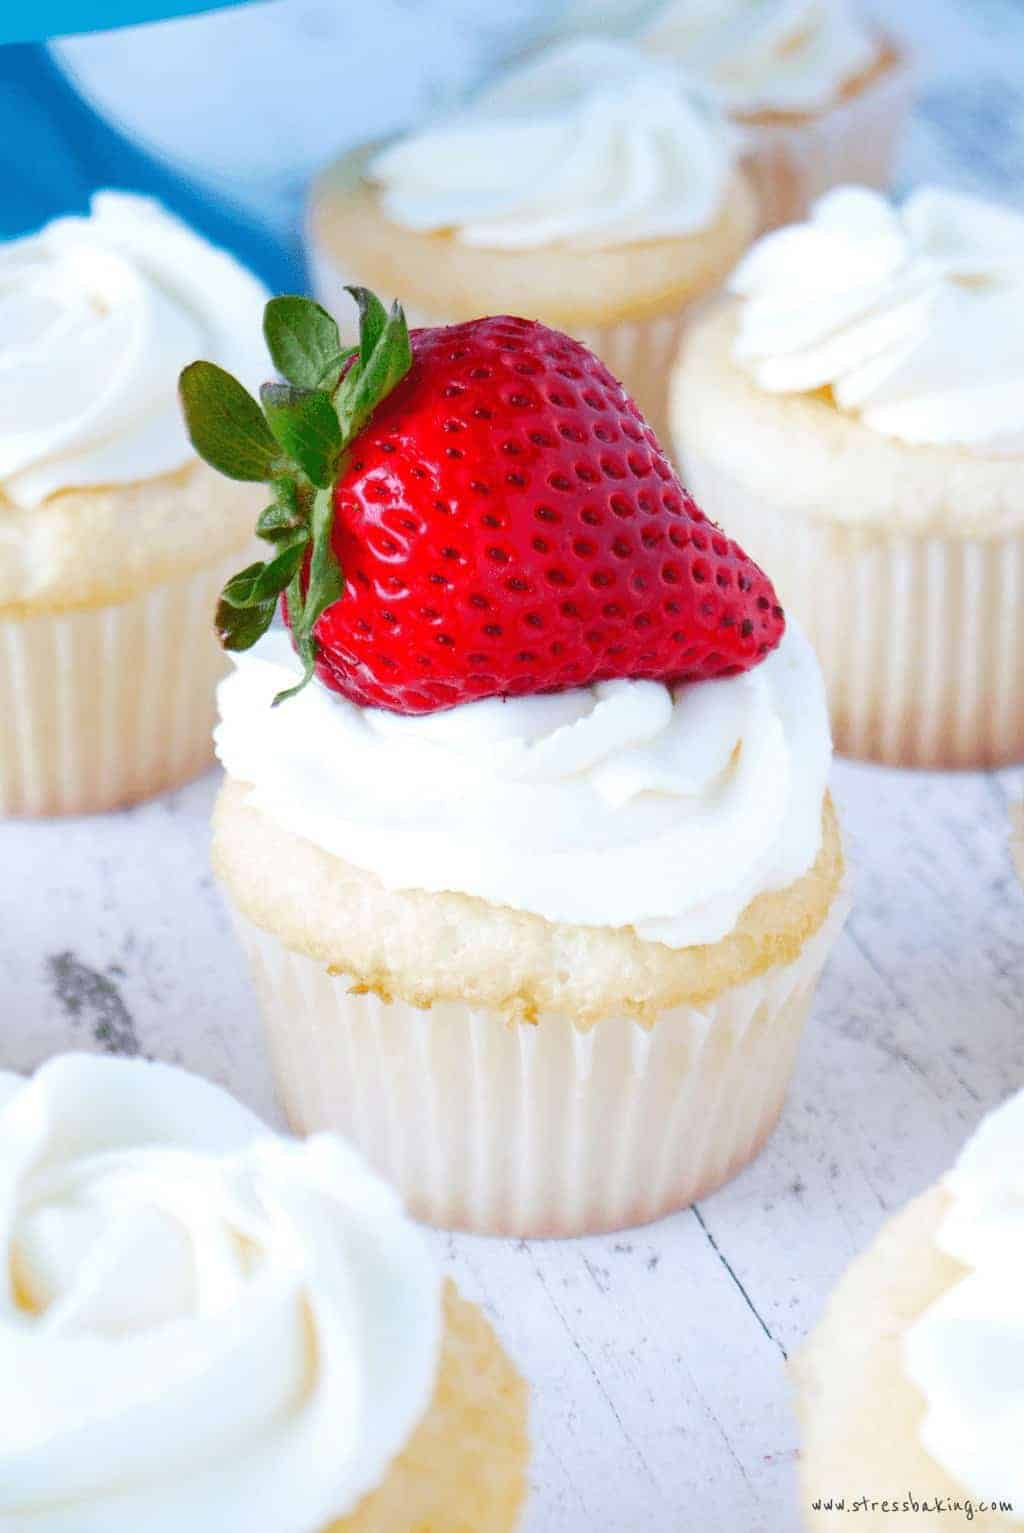 Boozy Angel Food Cupcakes with Amaretto Soaked Strawberries